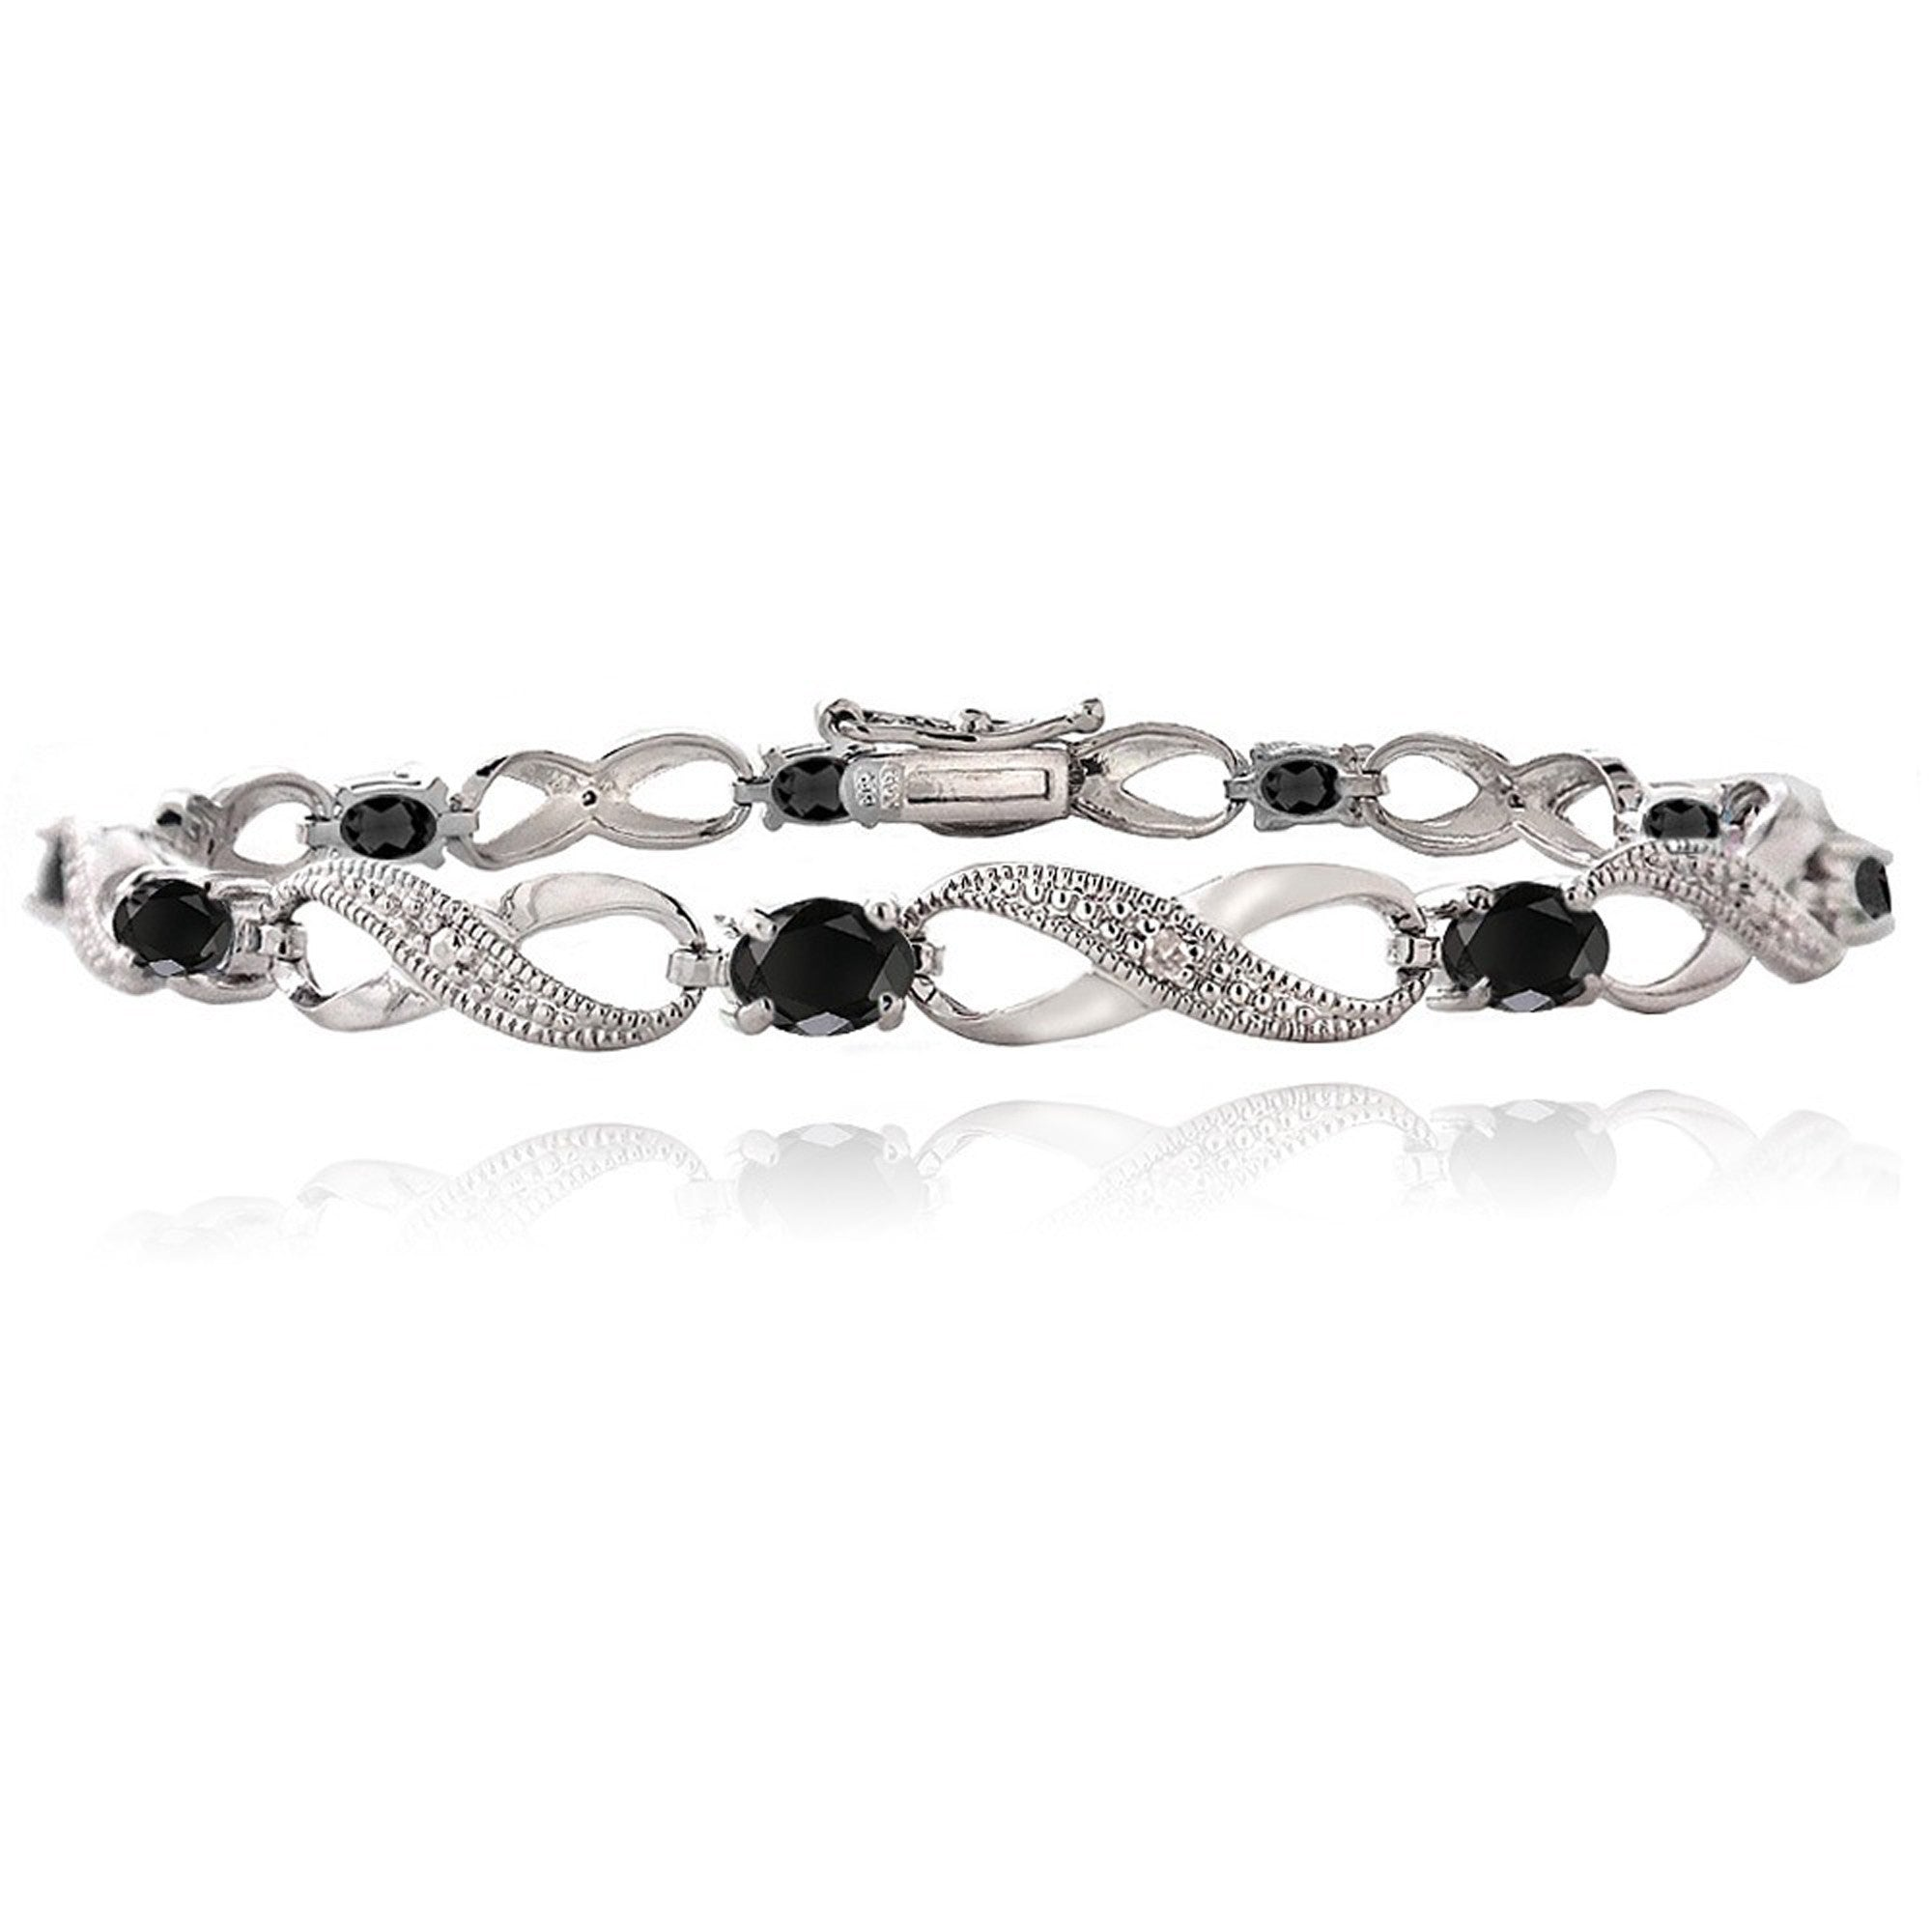 Infinity Bracelet With Diamond & Gem Accents in a Linked Style - Sapphire